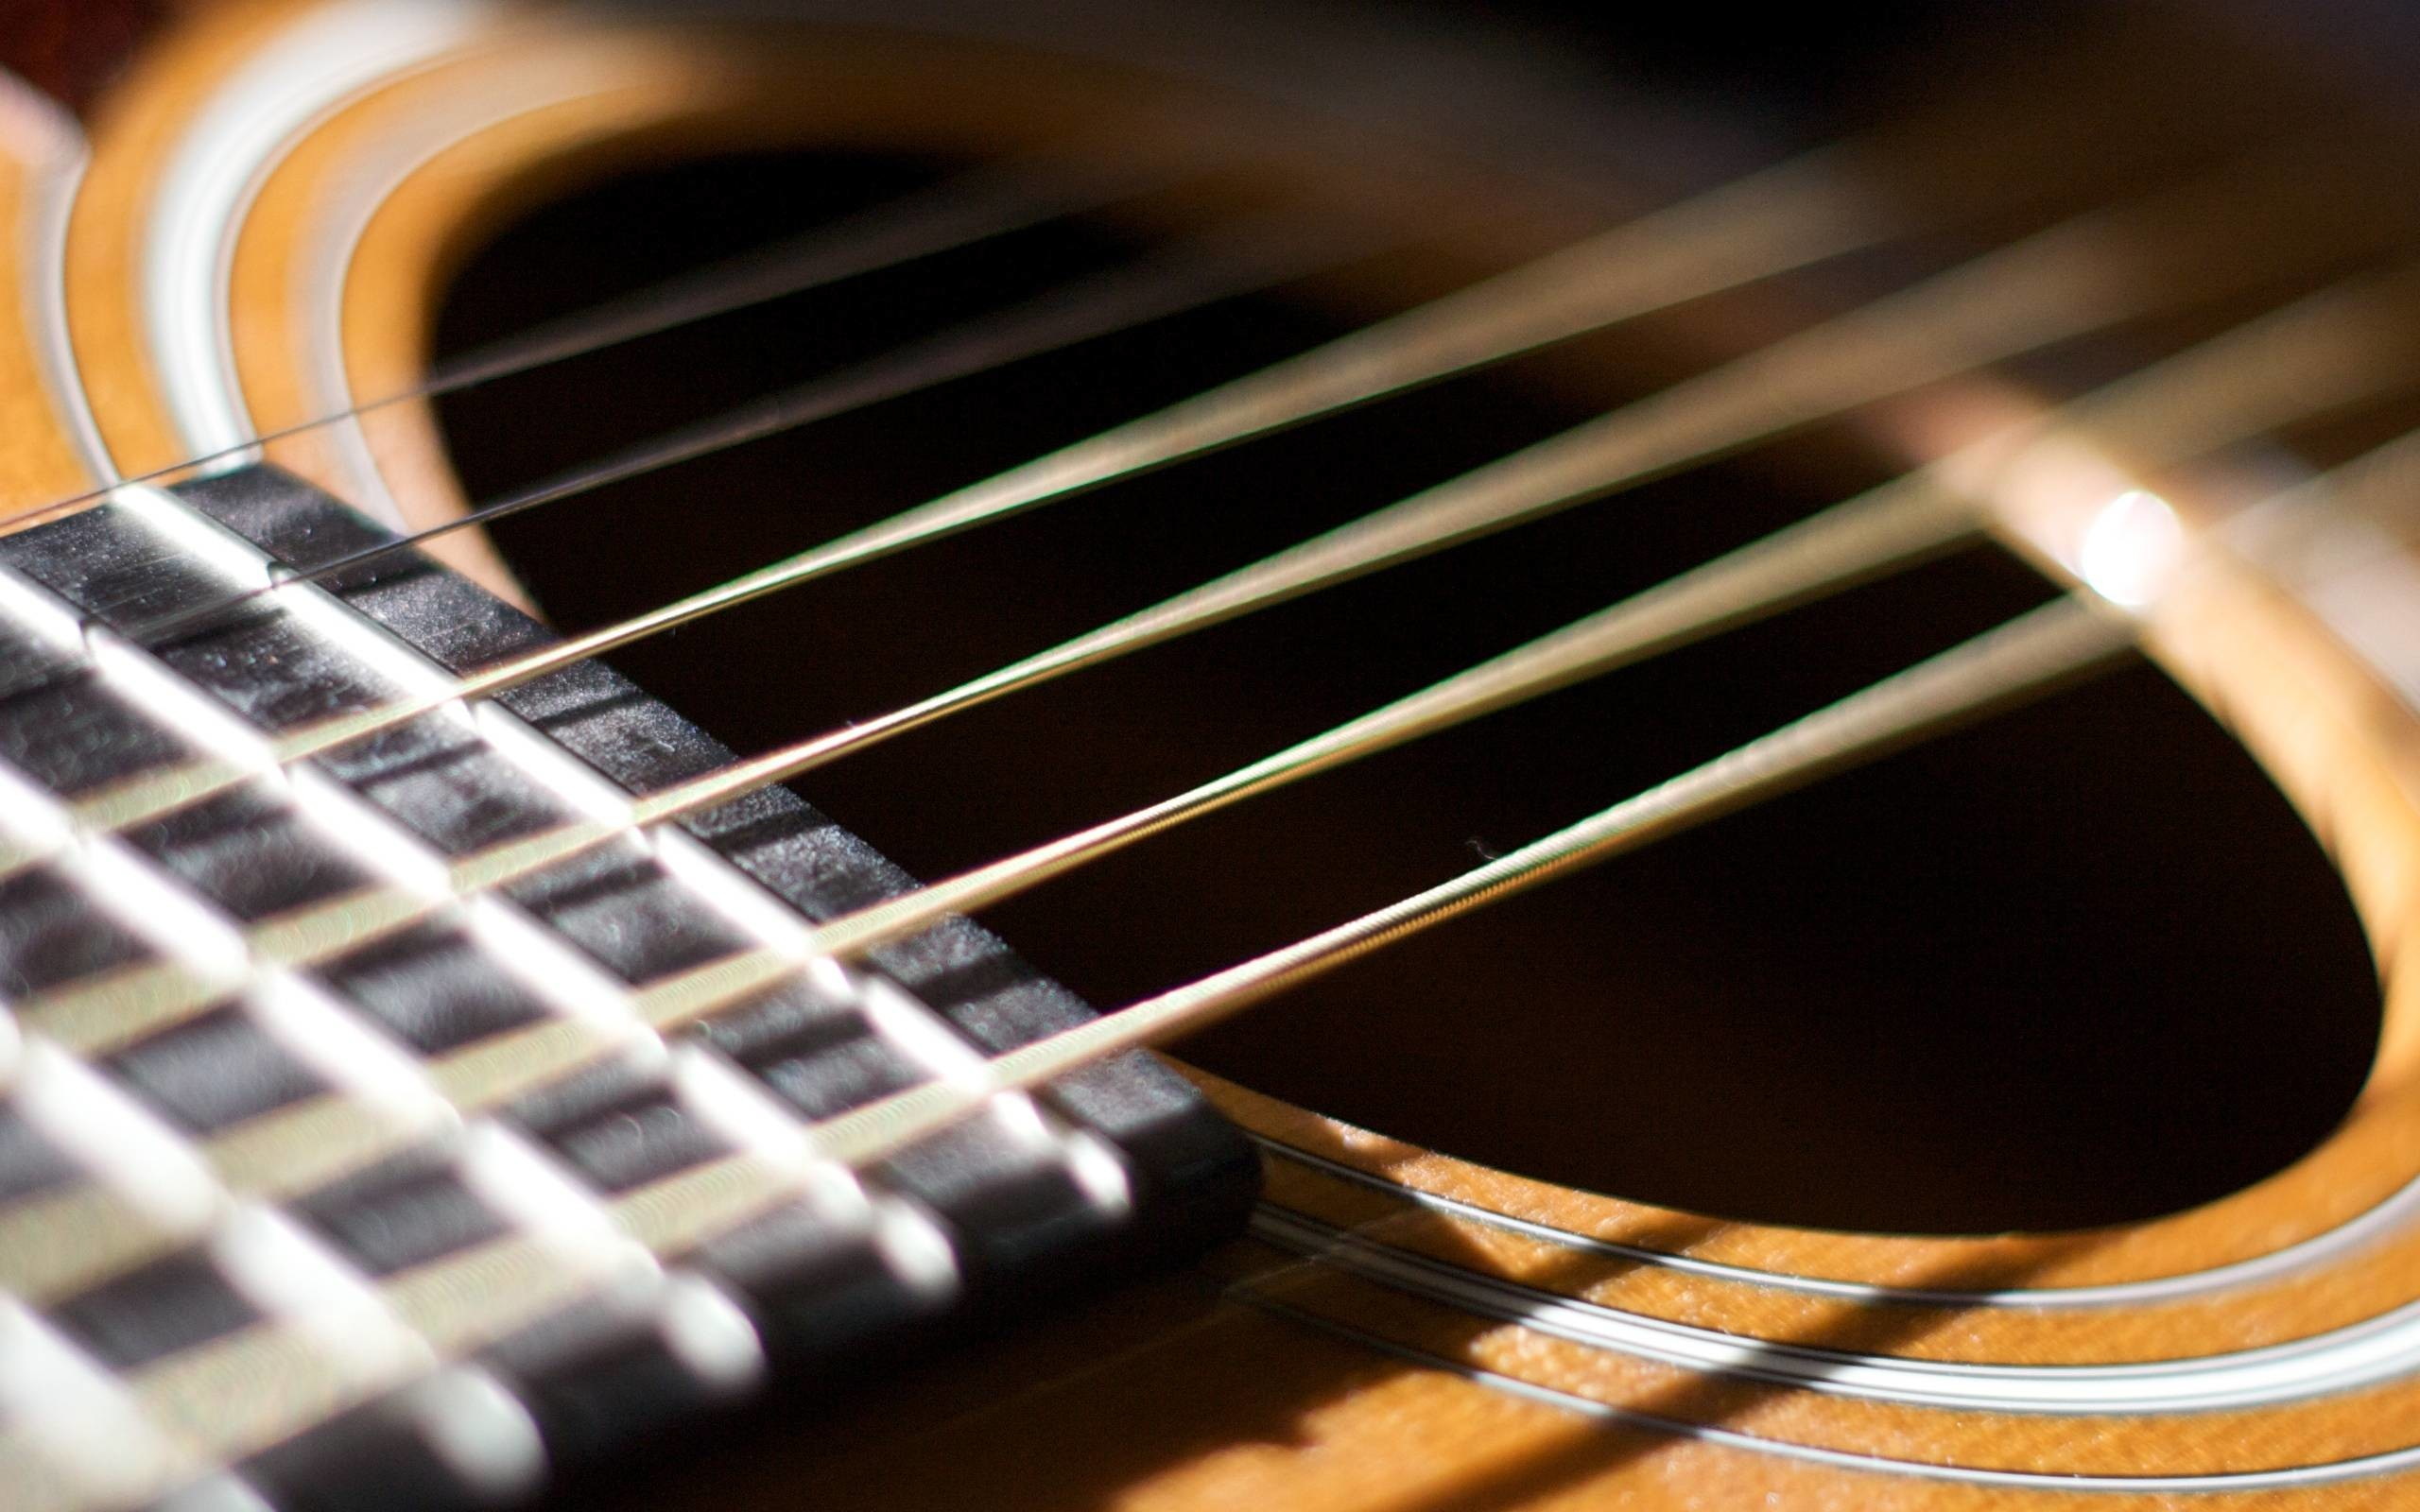 Martin guitar wallpaper 67 images - Free guitar wallpapers for pc ...